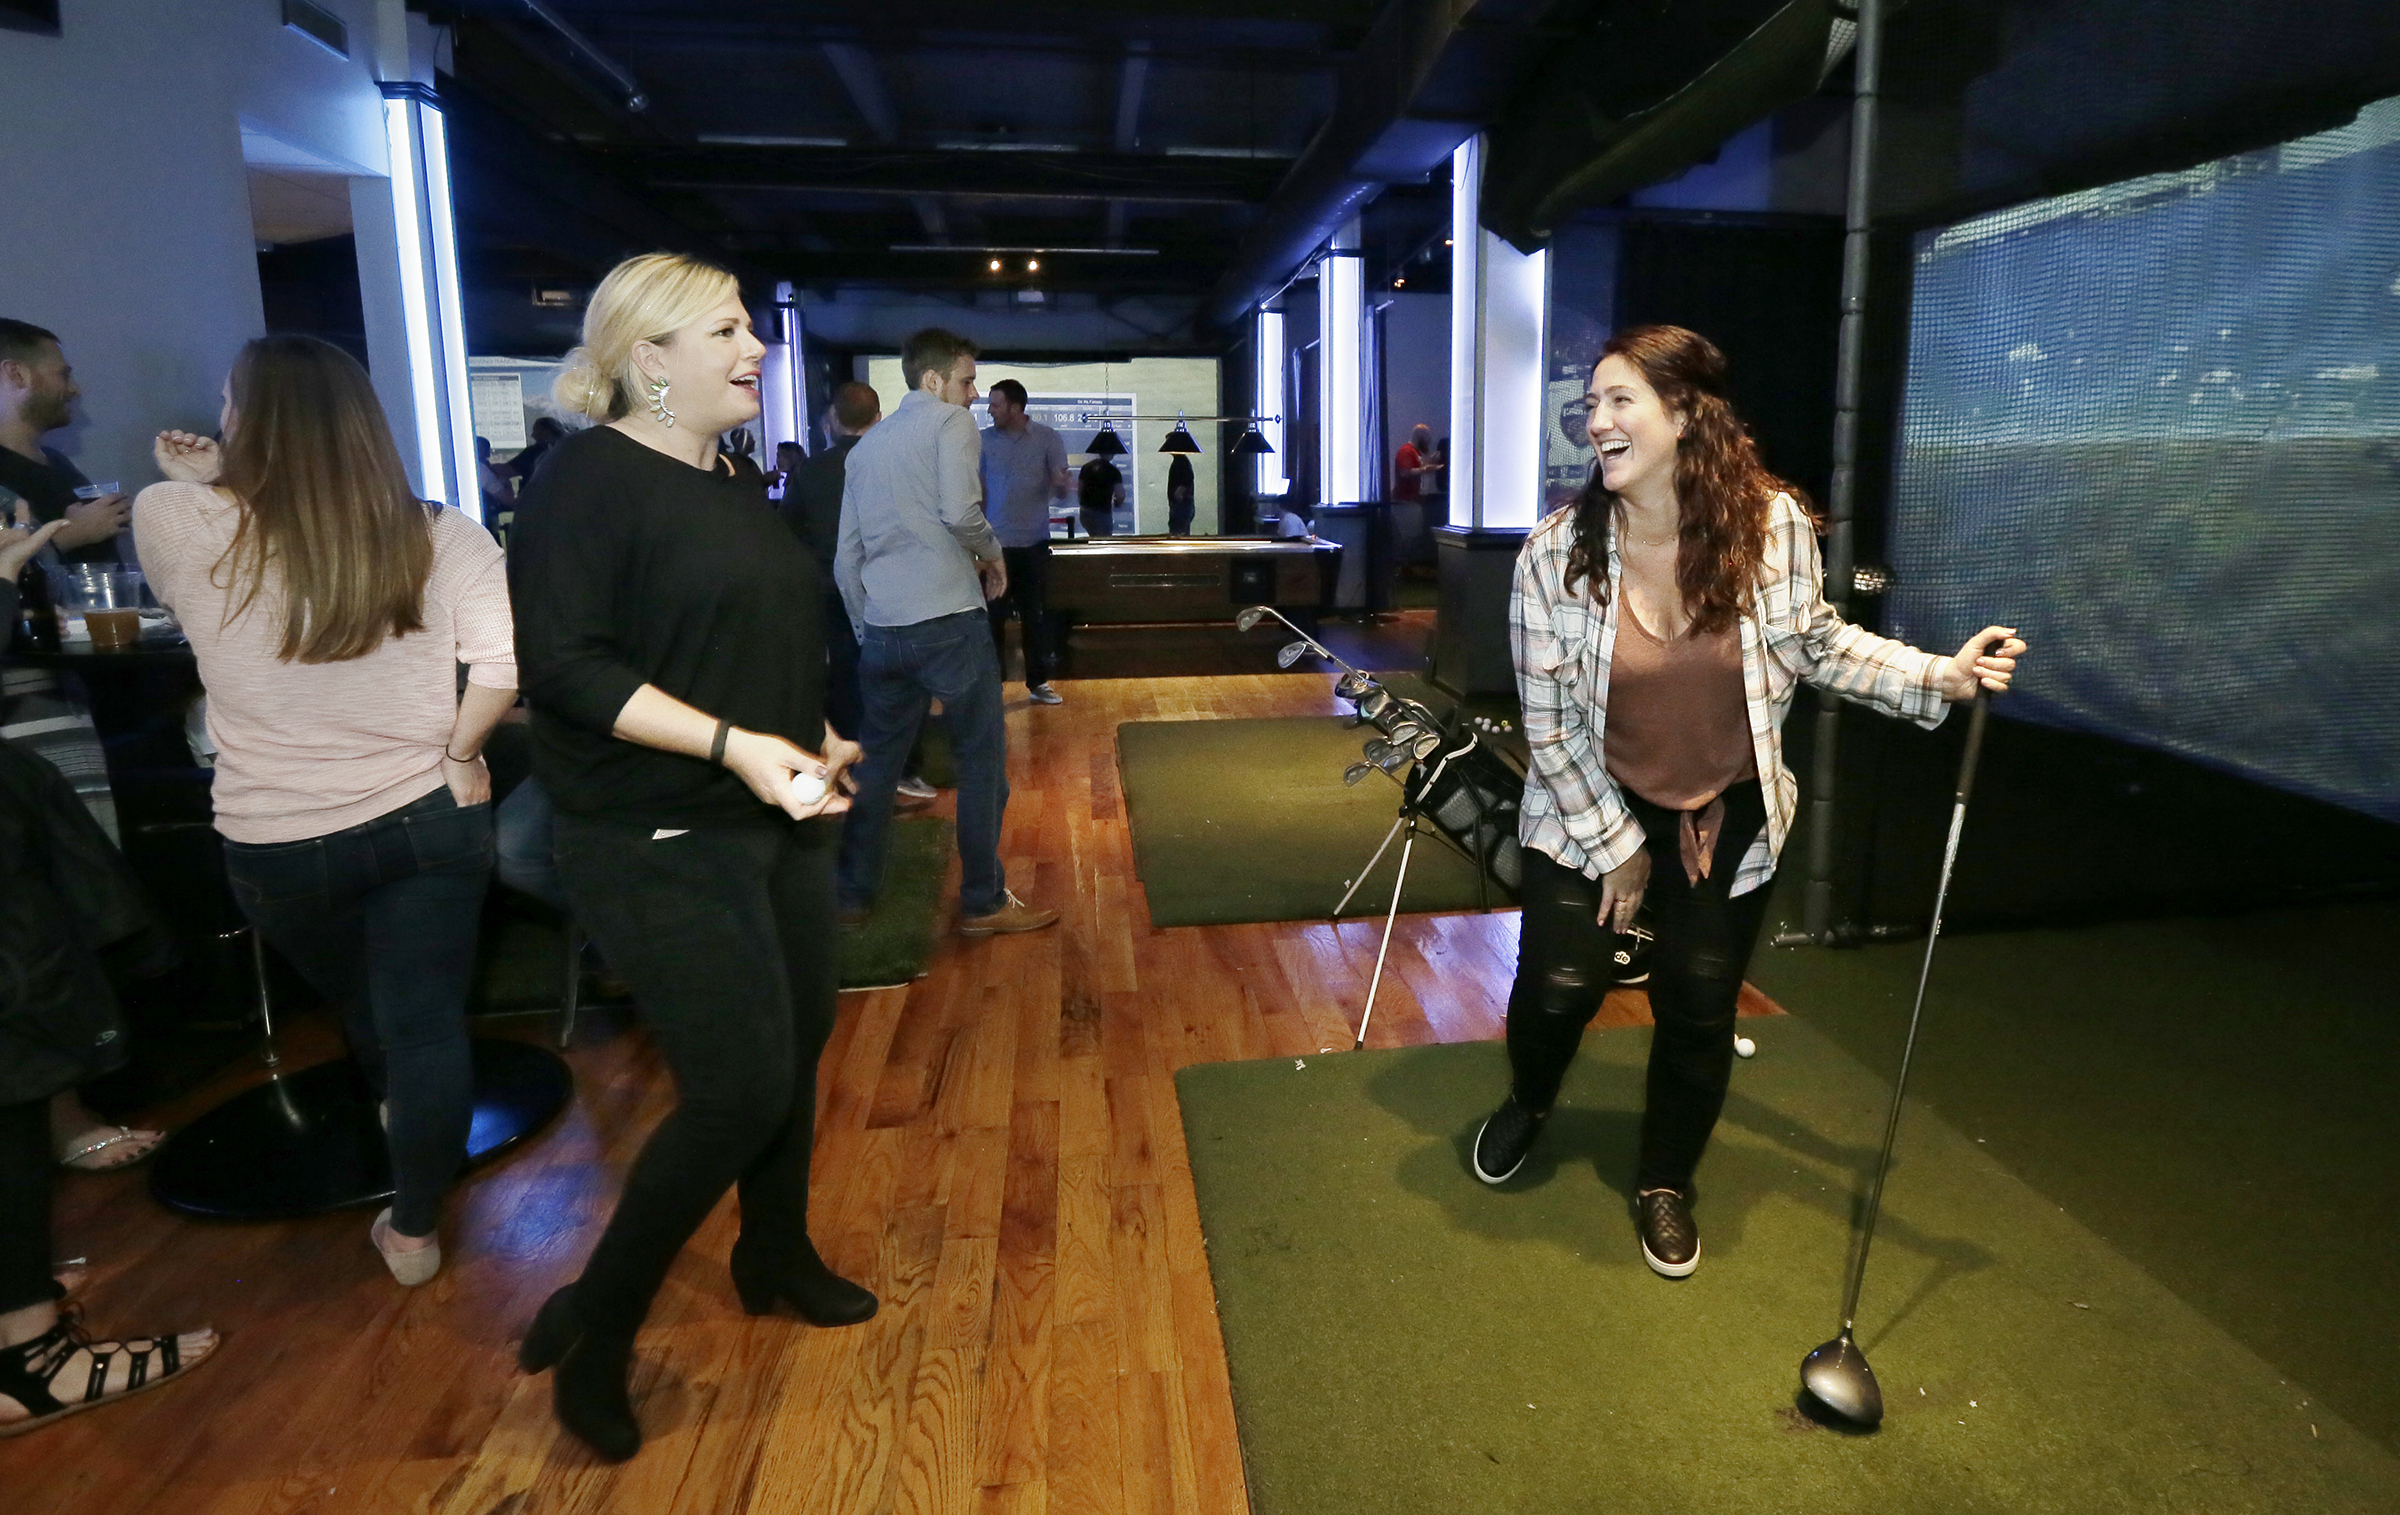 Lauren Attanasio (left) and Liz Giunta of Philly dont even play golf, but while attending a birthday party at the club they enjoy the golf simulators upstairs at Golf and Social.